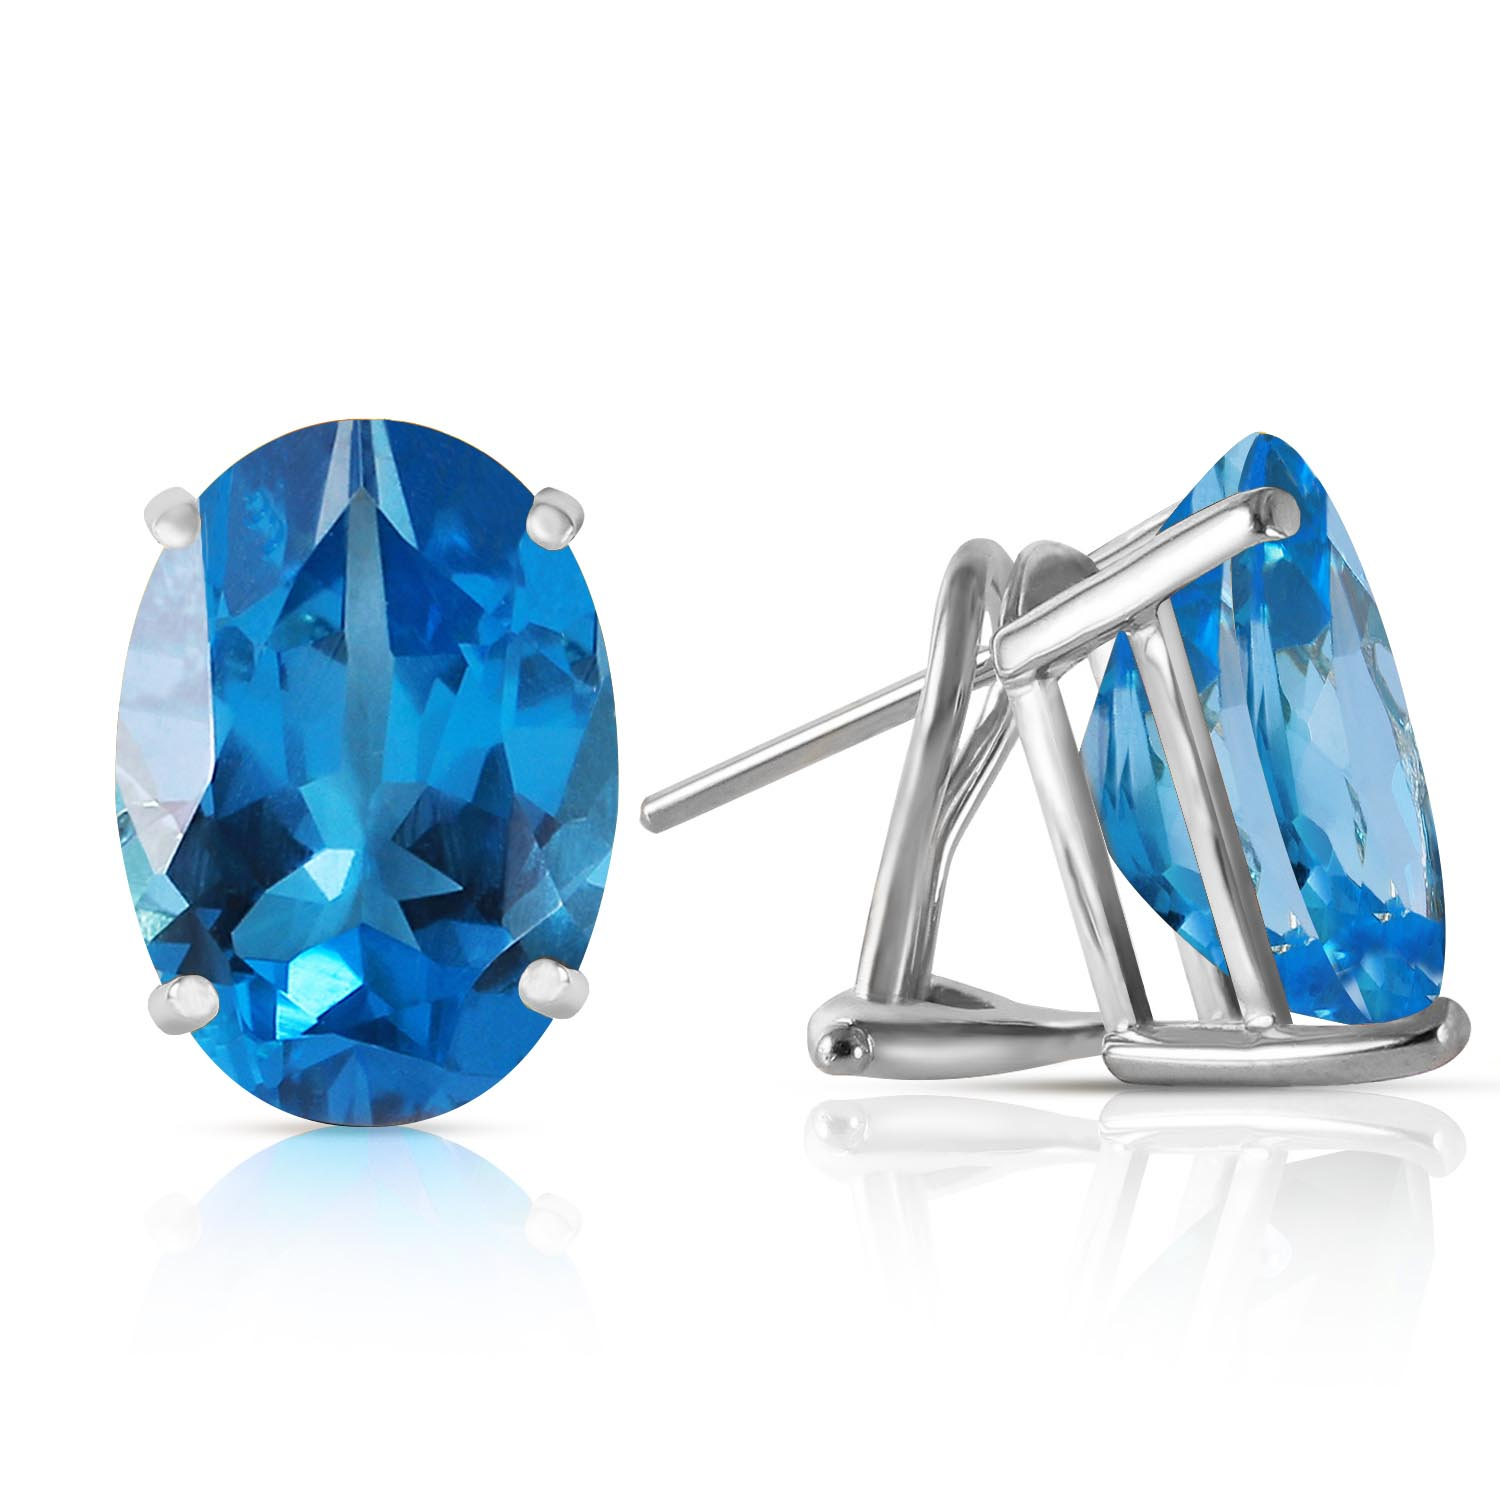 Blue Topaz Stud Earrings 16.0ctw in 9ct White Gold